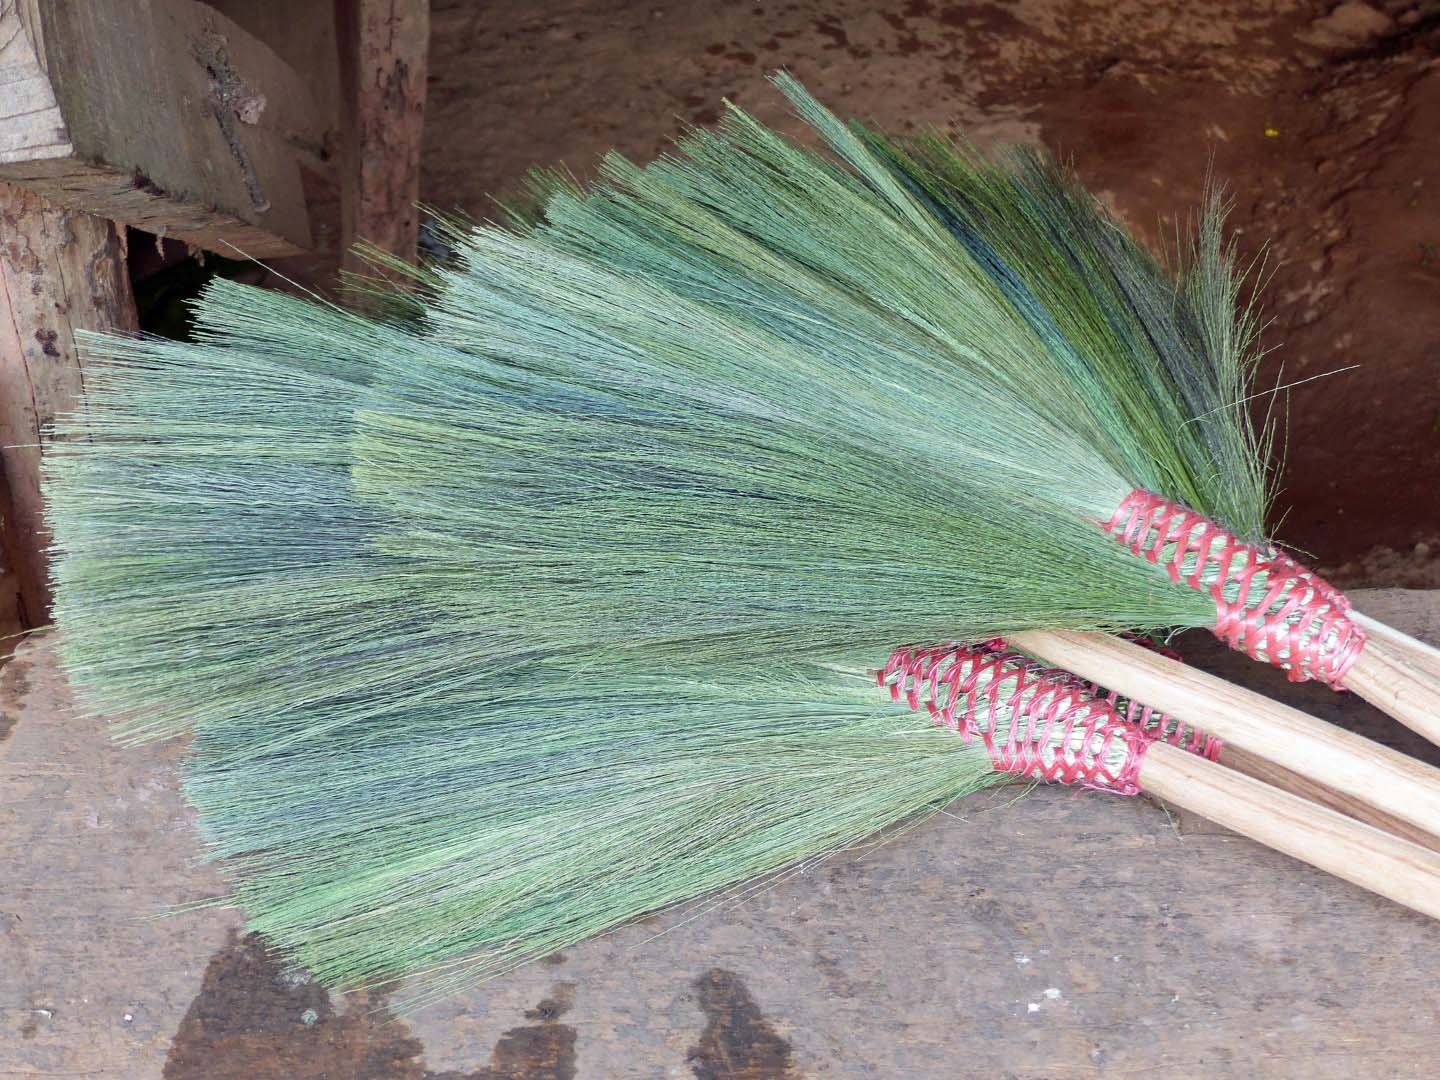 Brooms made from green grasses